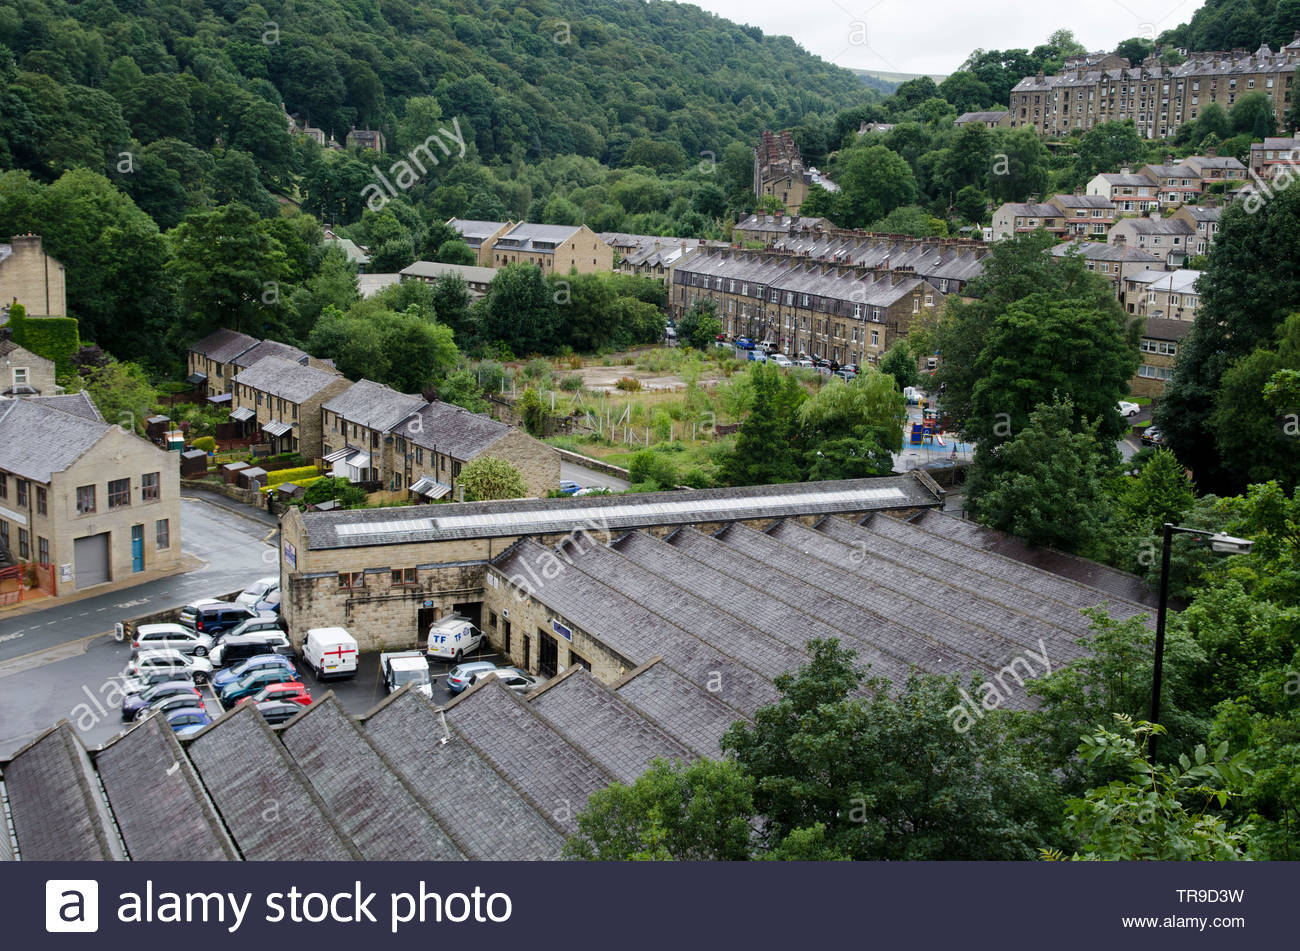 Ex-industrial buildings and housing in Hebden Bridge, West Yorkshire.  The town used to be a centre for the wool trade, weaving and clothing manufactu - Stock Image